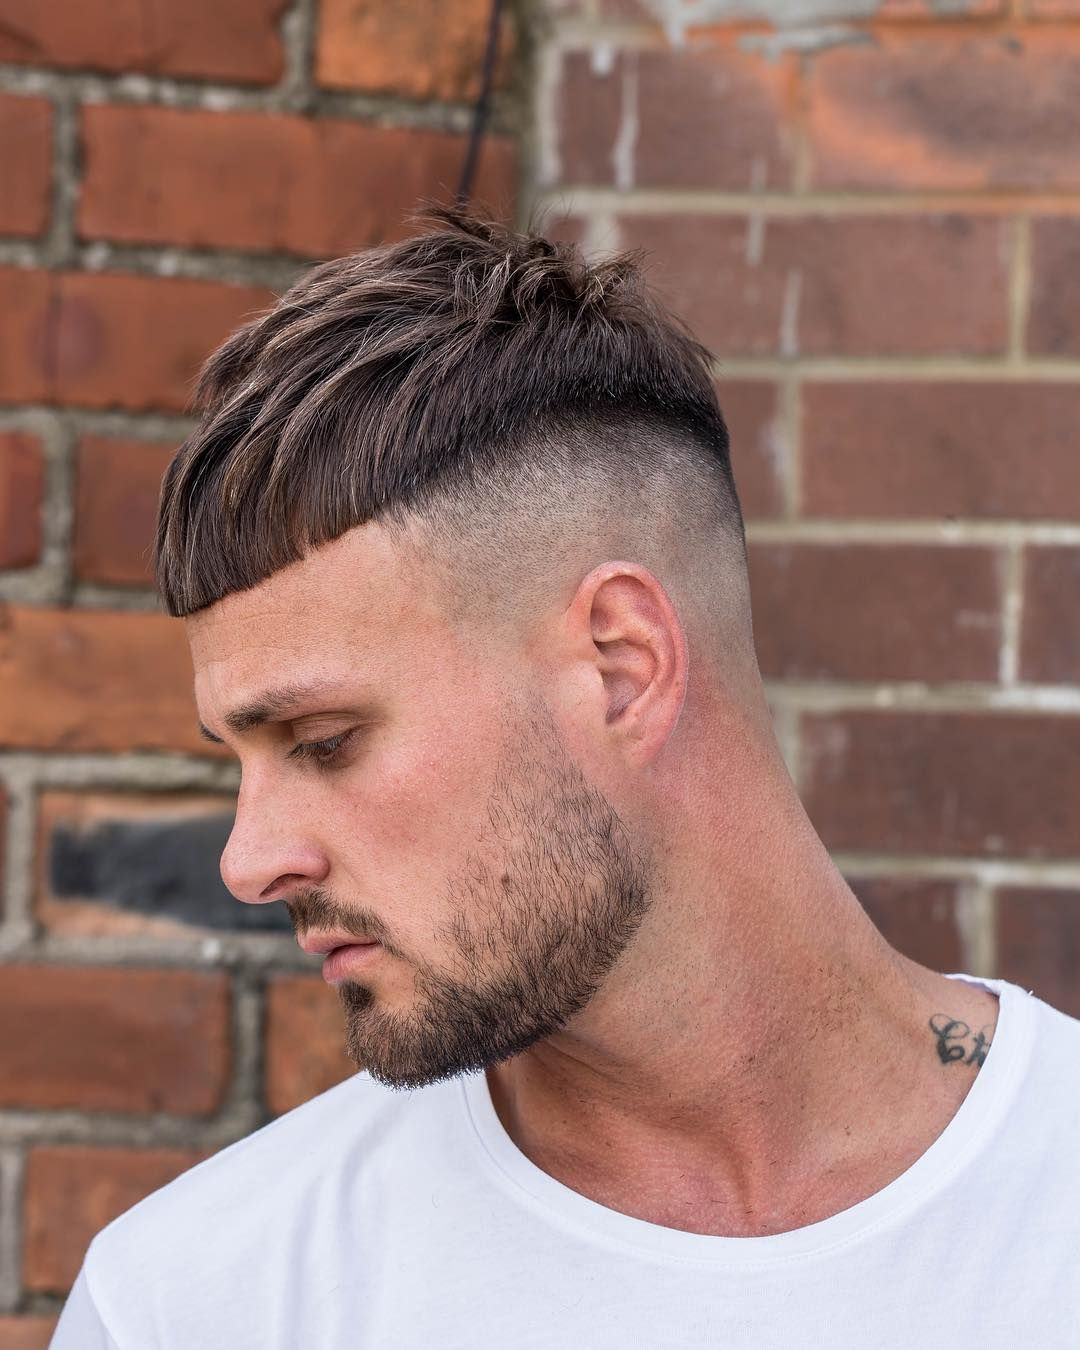 Mens Hairstyles 2019 Haj Hair Styles Hair Cuts és Haircuts For Men